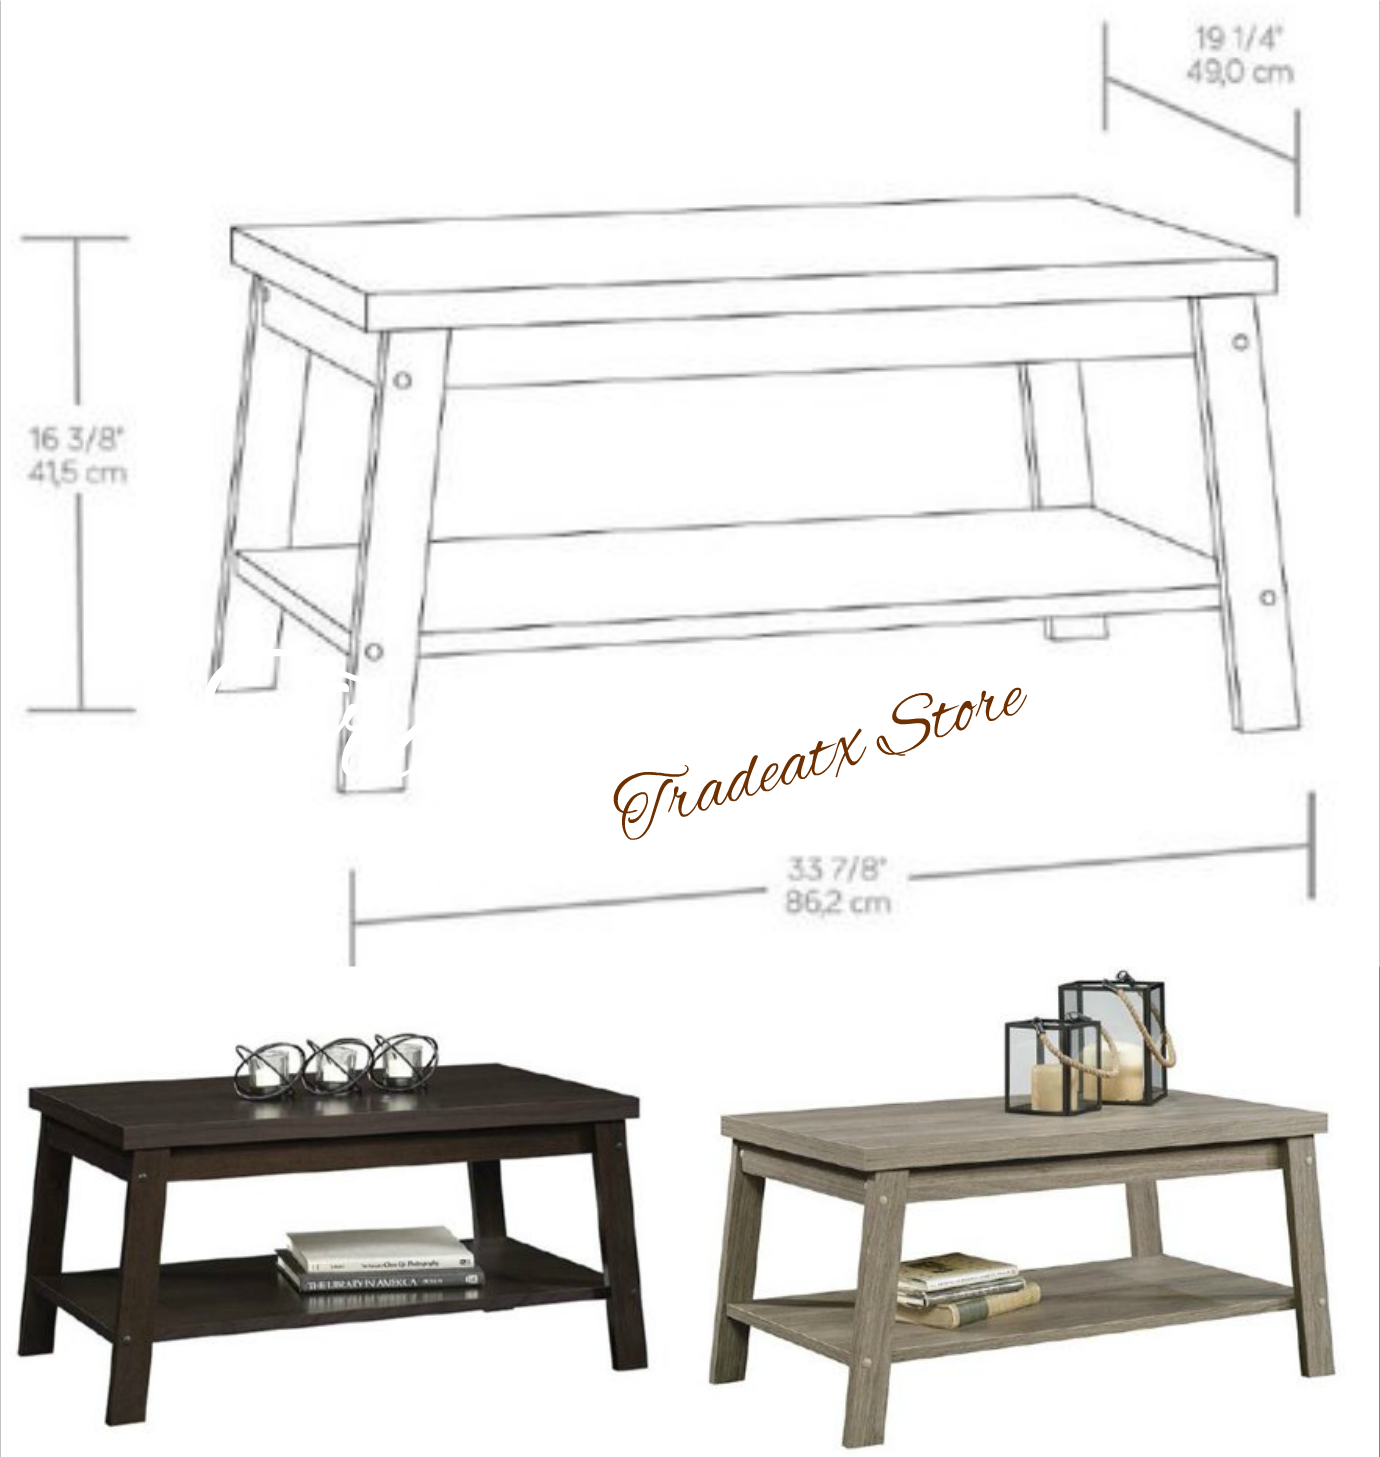 Details About Mainstays Logan Coffee Table Shelf Fashion Brown Espresso Or Rustic Oak Finish